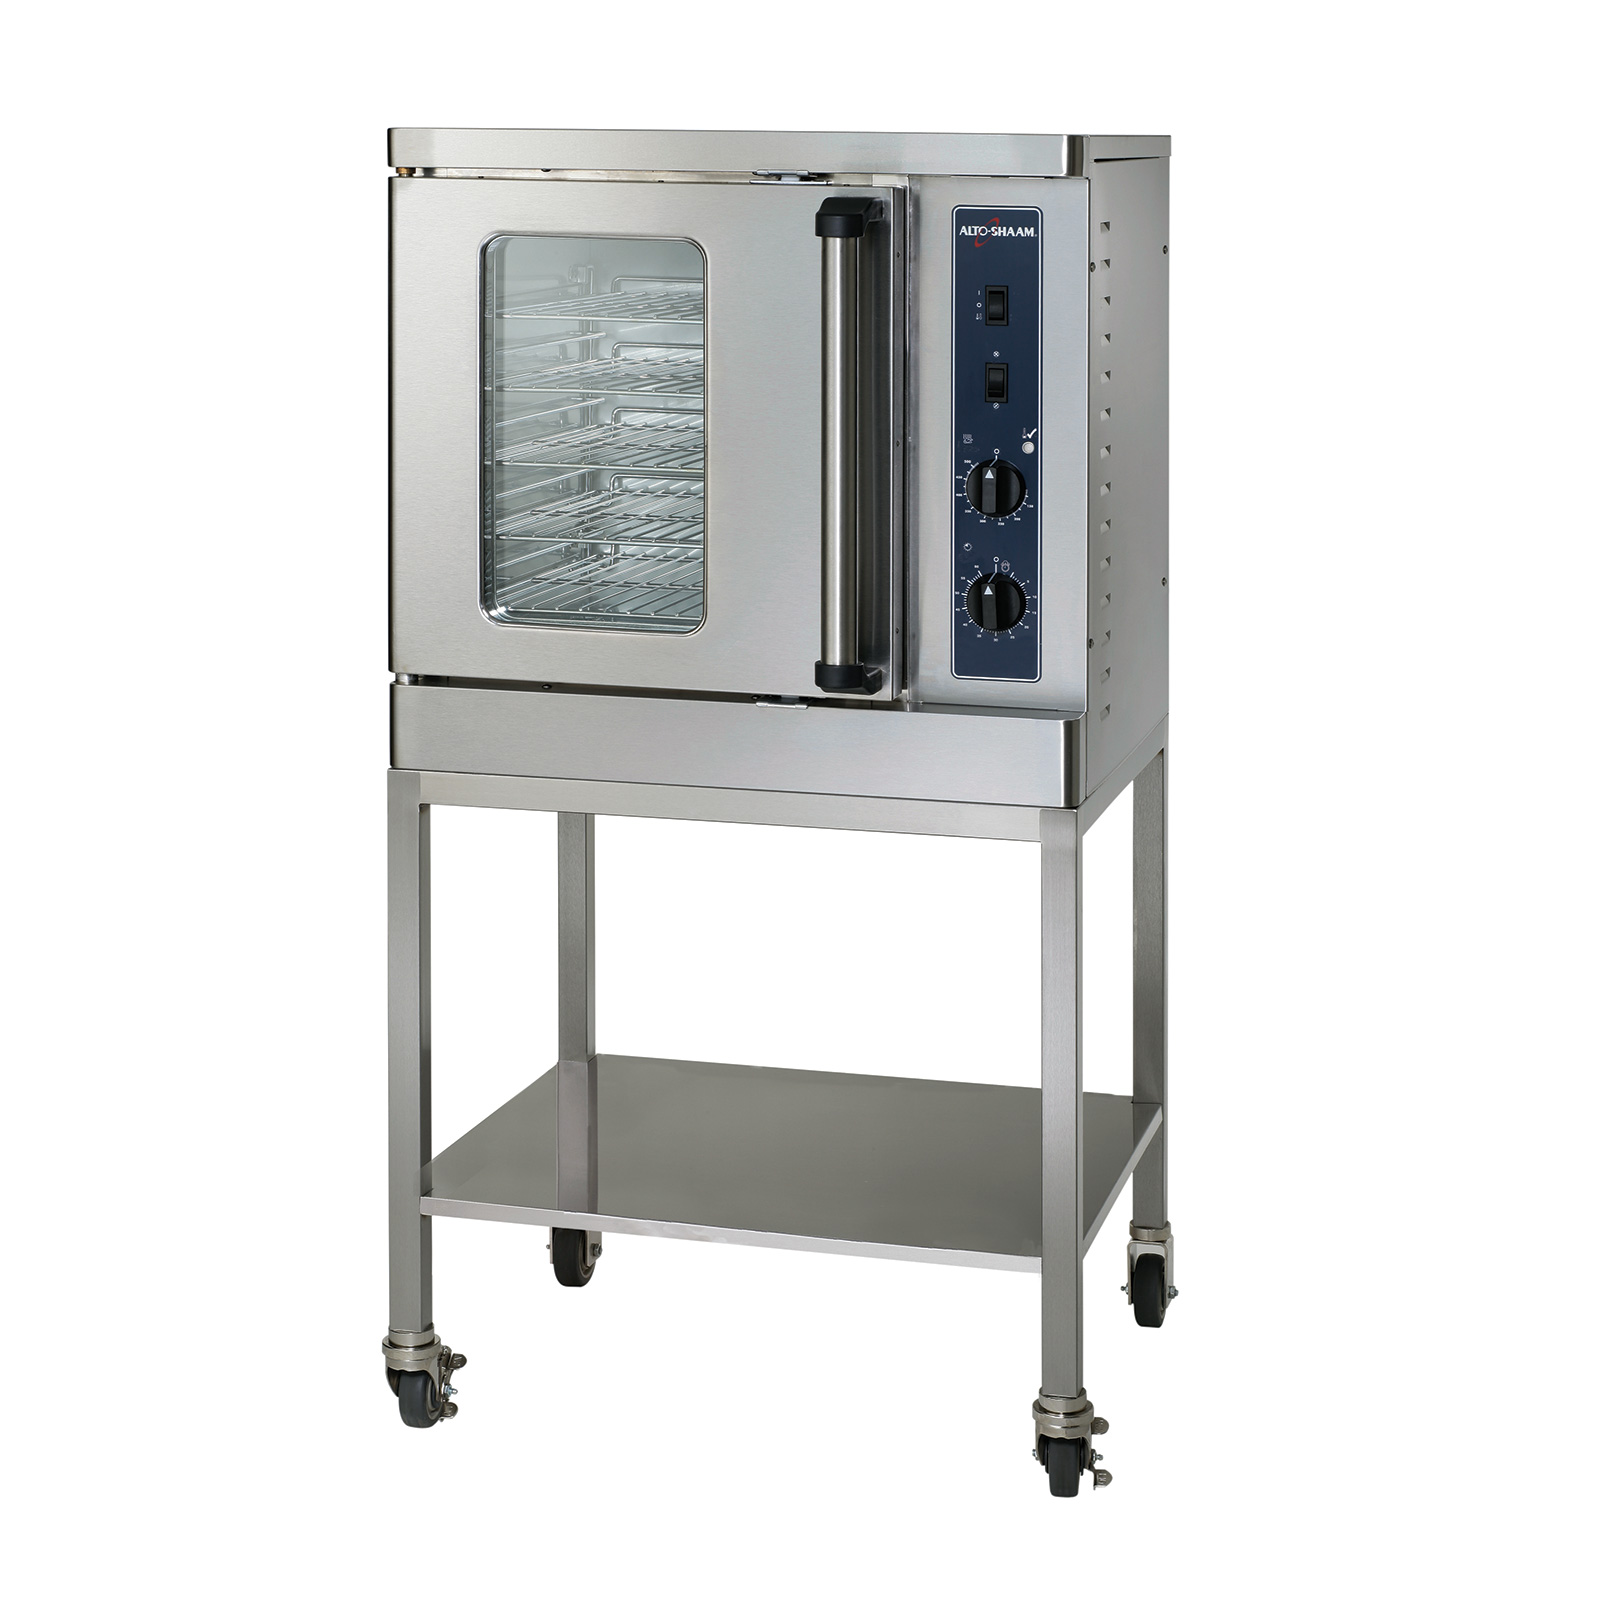 Alto-Shaam ASC-2E/E convection oven, electric